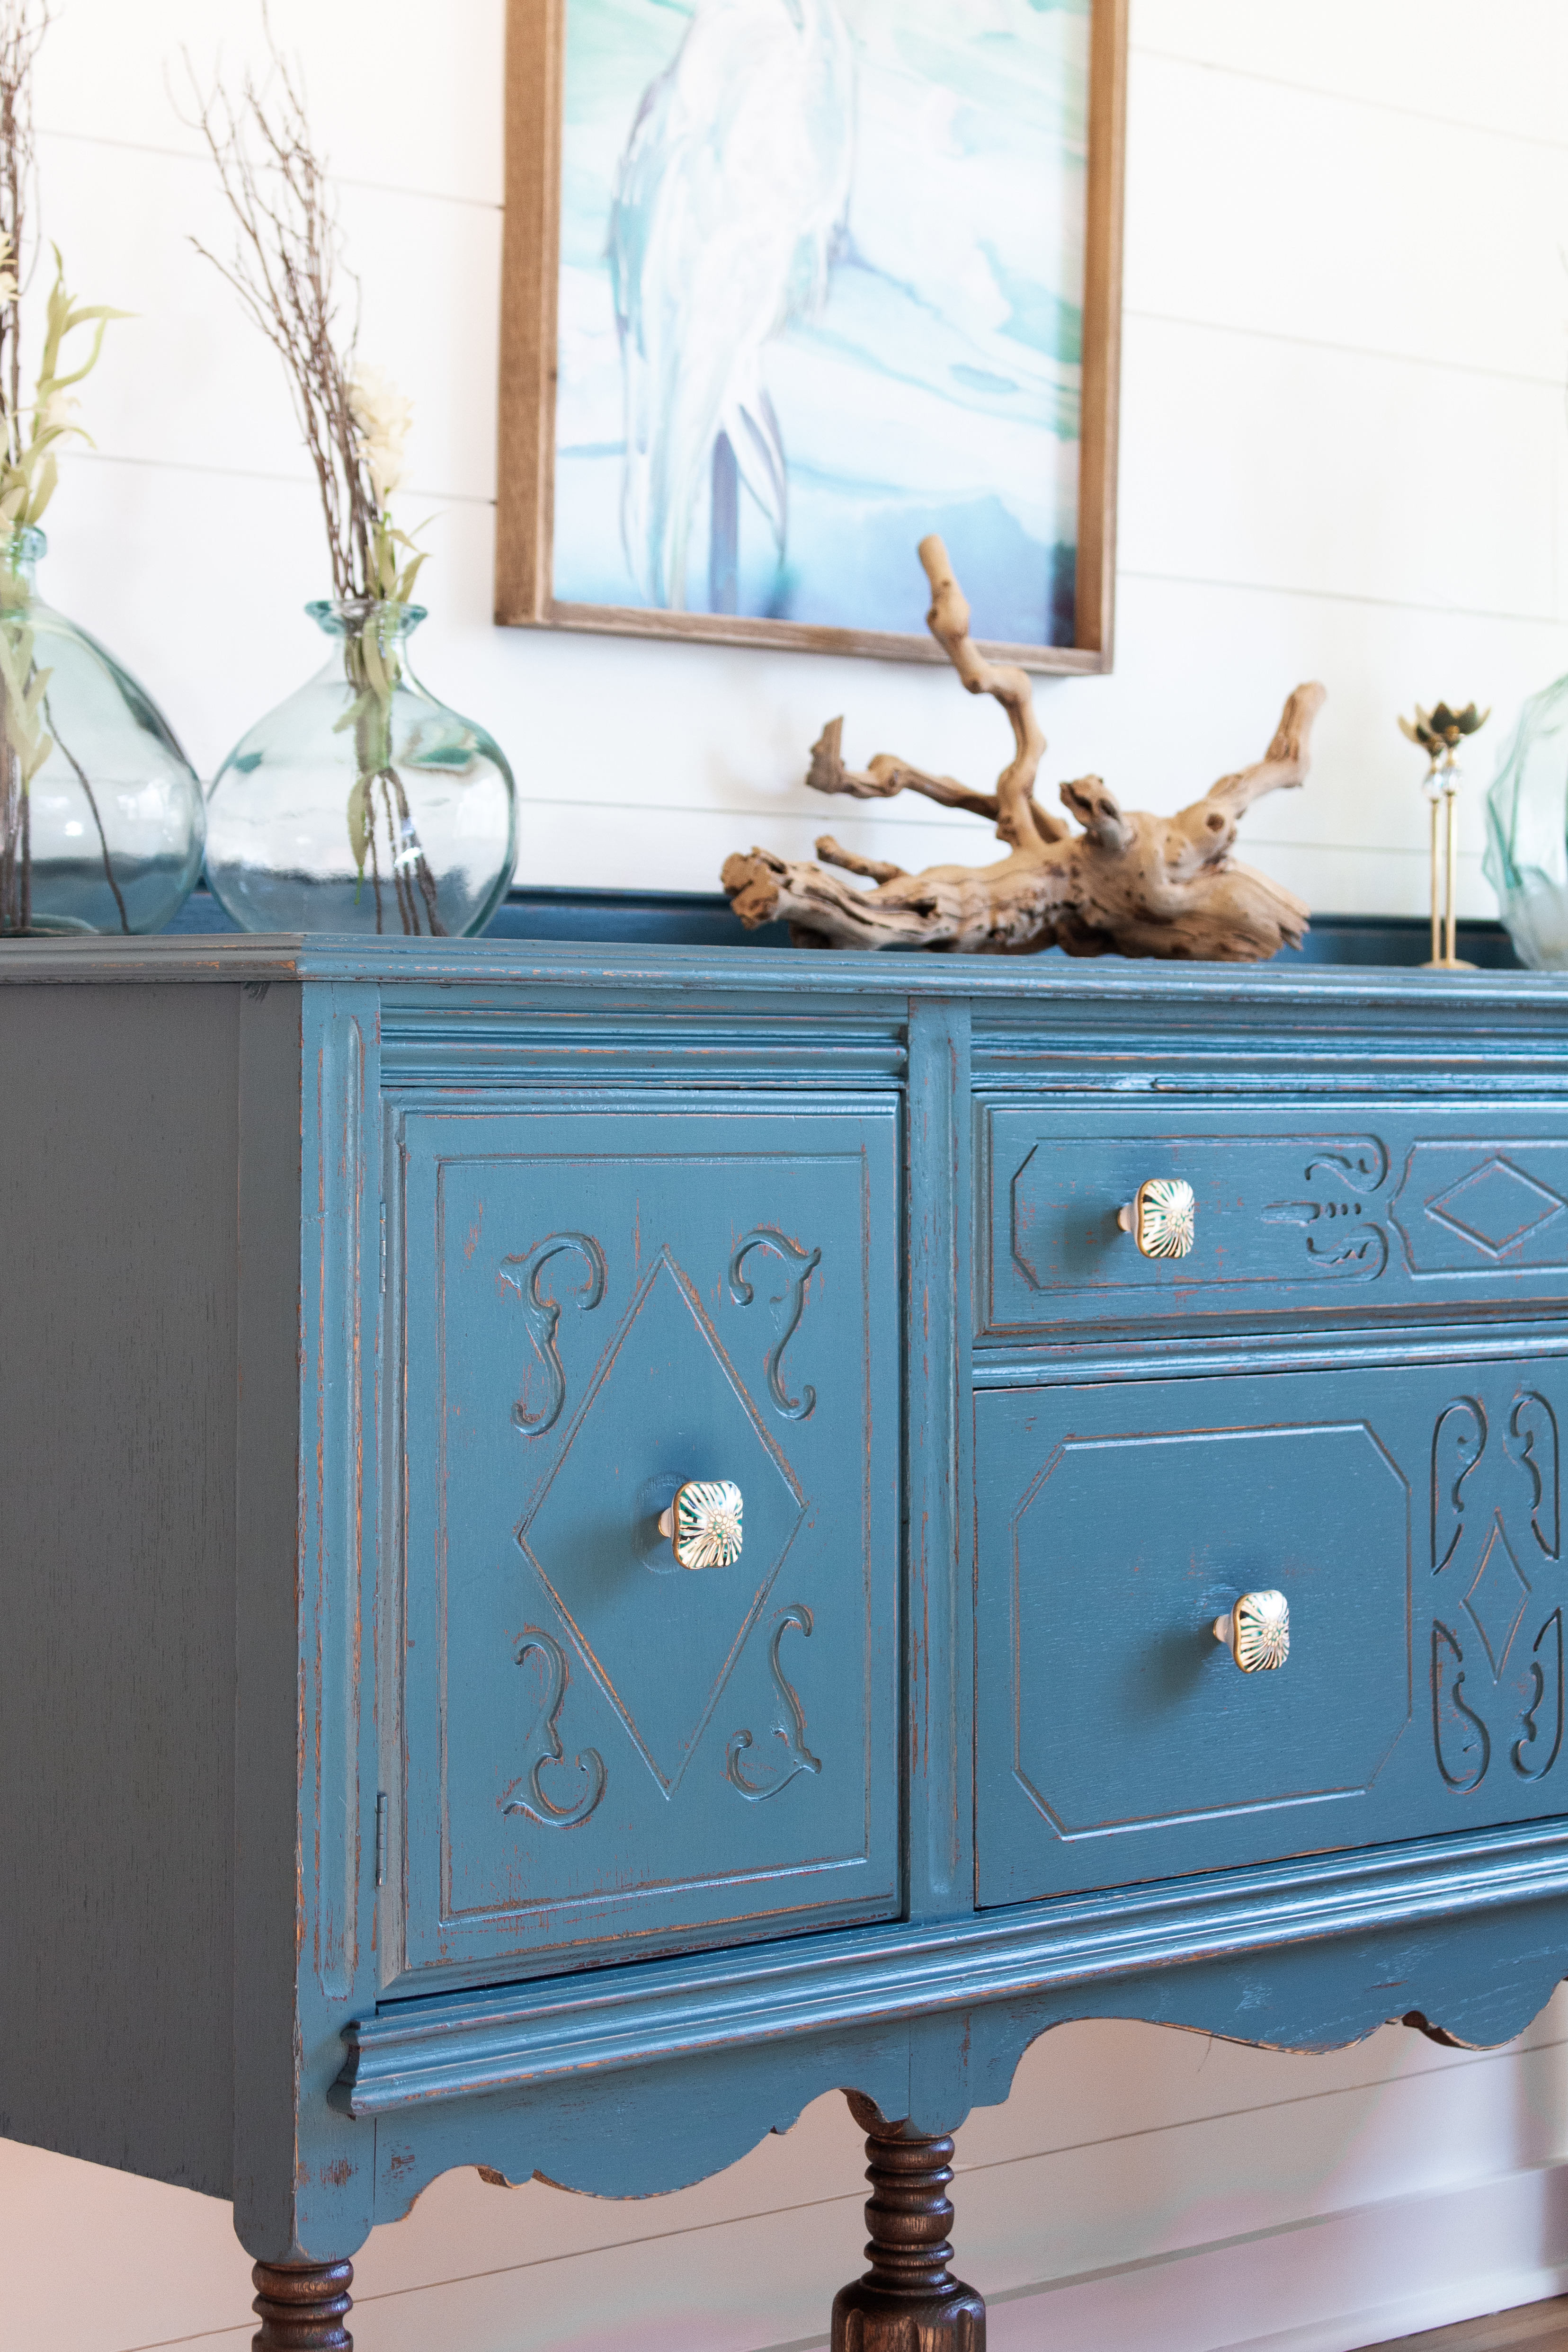 Best Finish for Antique Furniture Inspirational How to Transform Antique Furniture with Fusion Mineral Paint